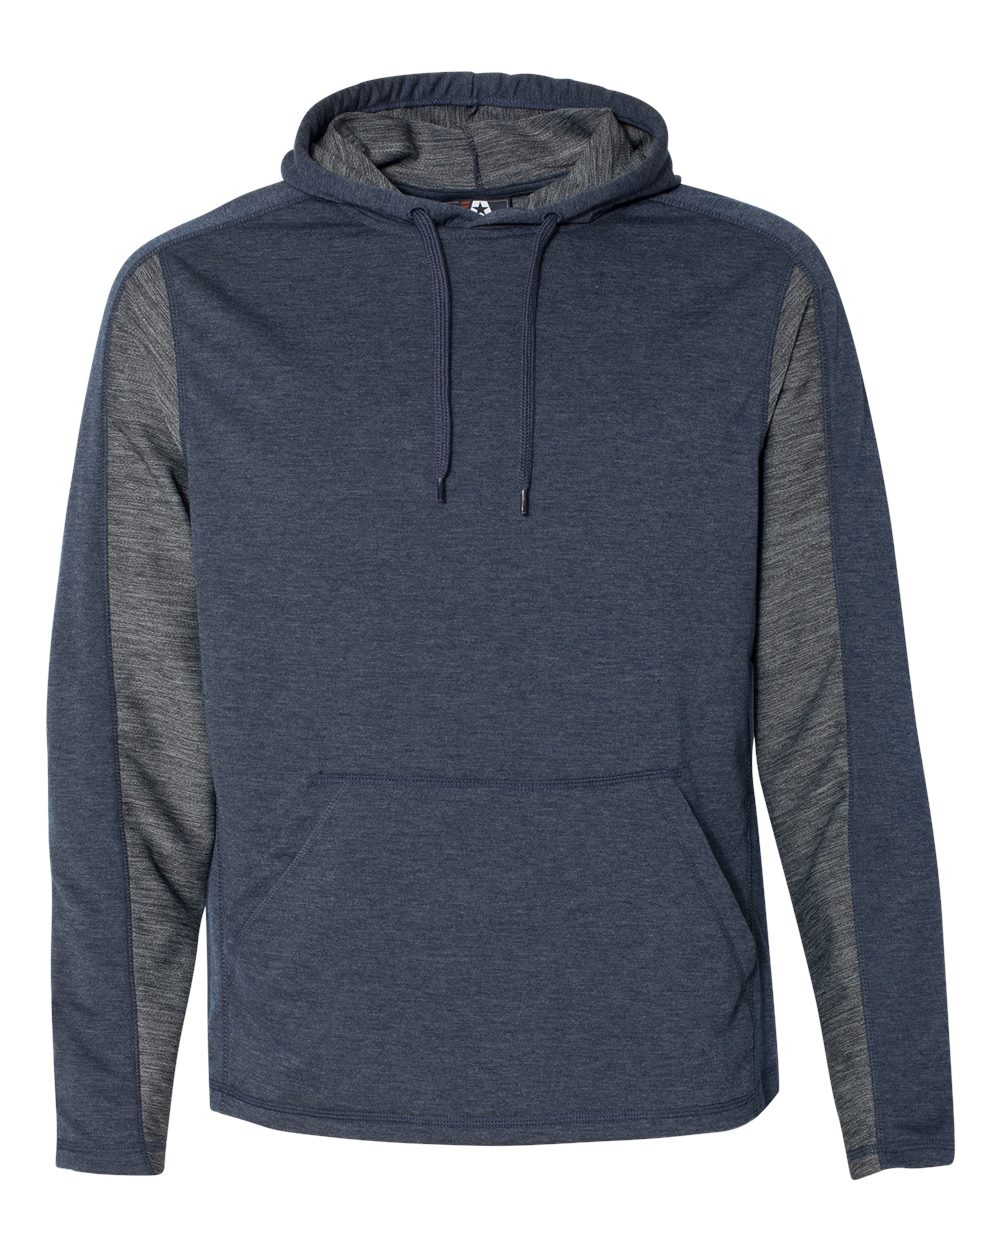 J. America 8435 - Omega Stretch Terry Hooded Pullover